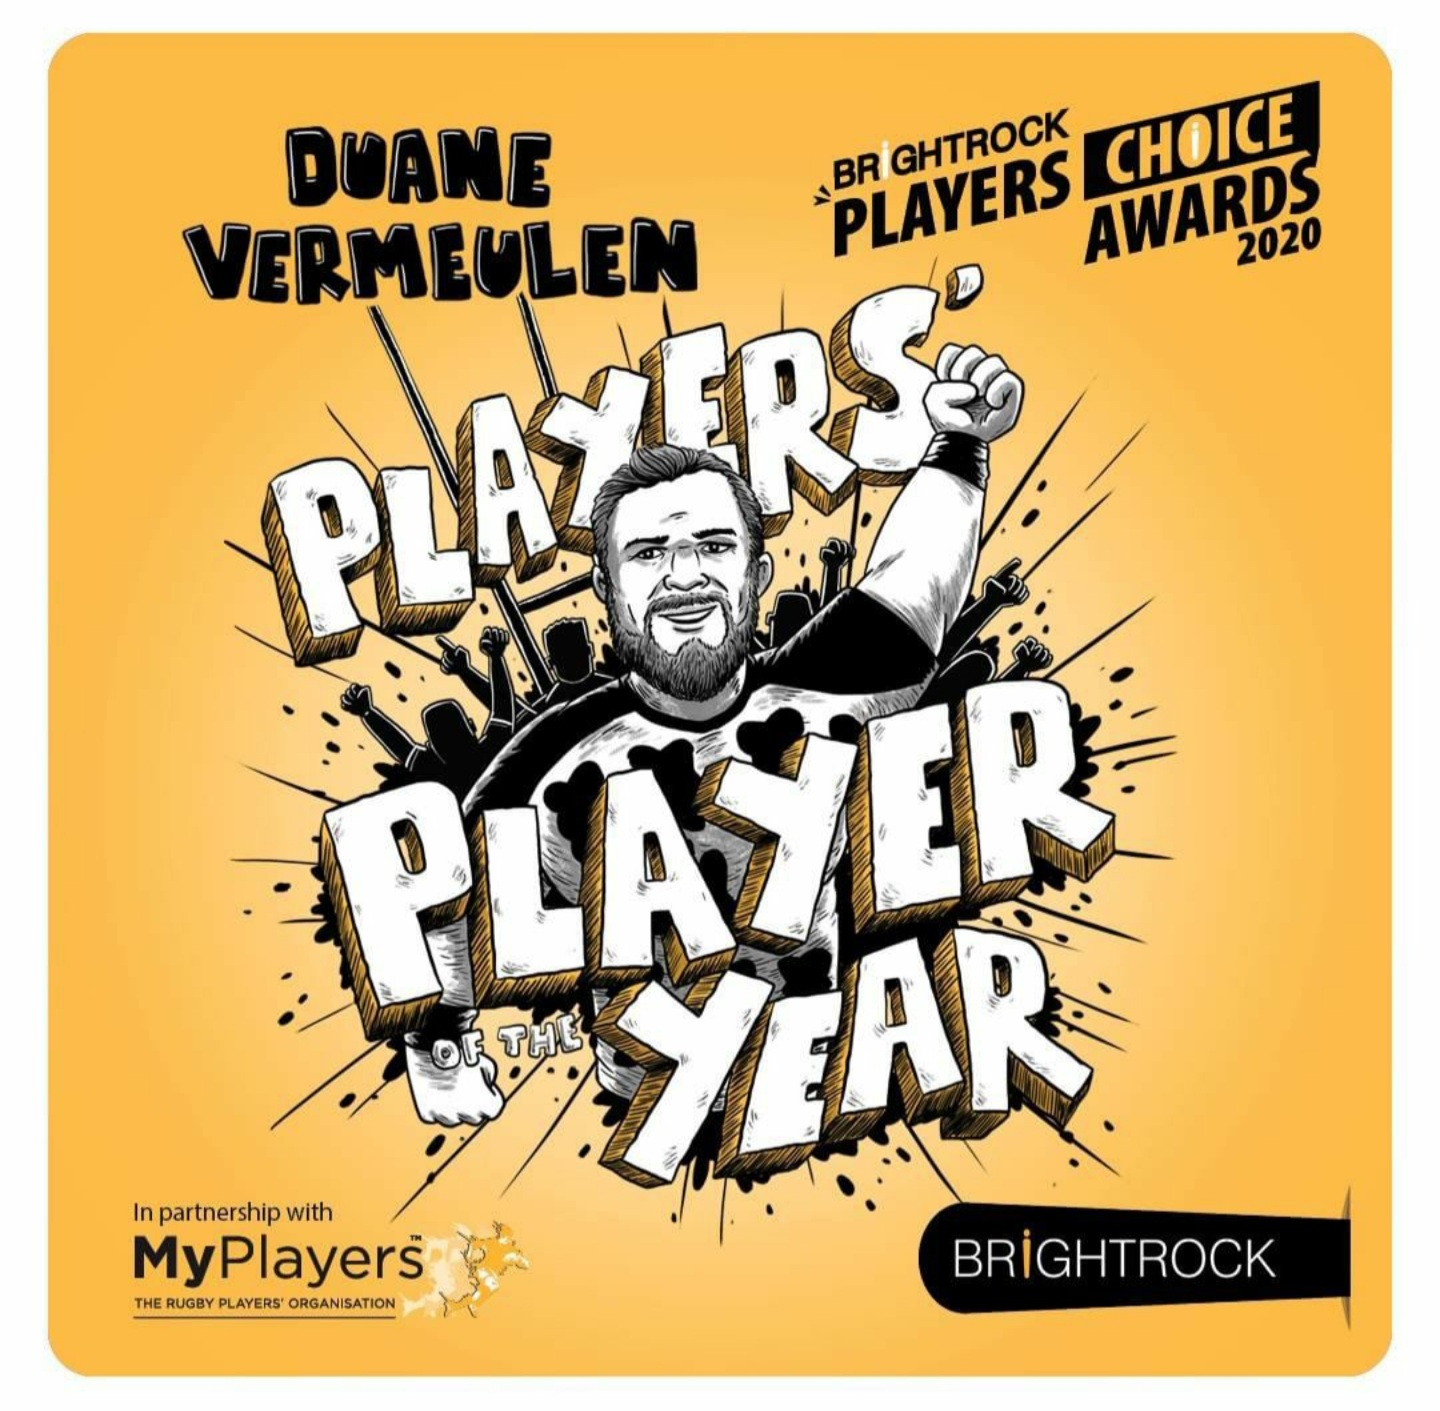 Duane Vermeulen leads the pack at BrightRock Players' Choice Awards 2020